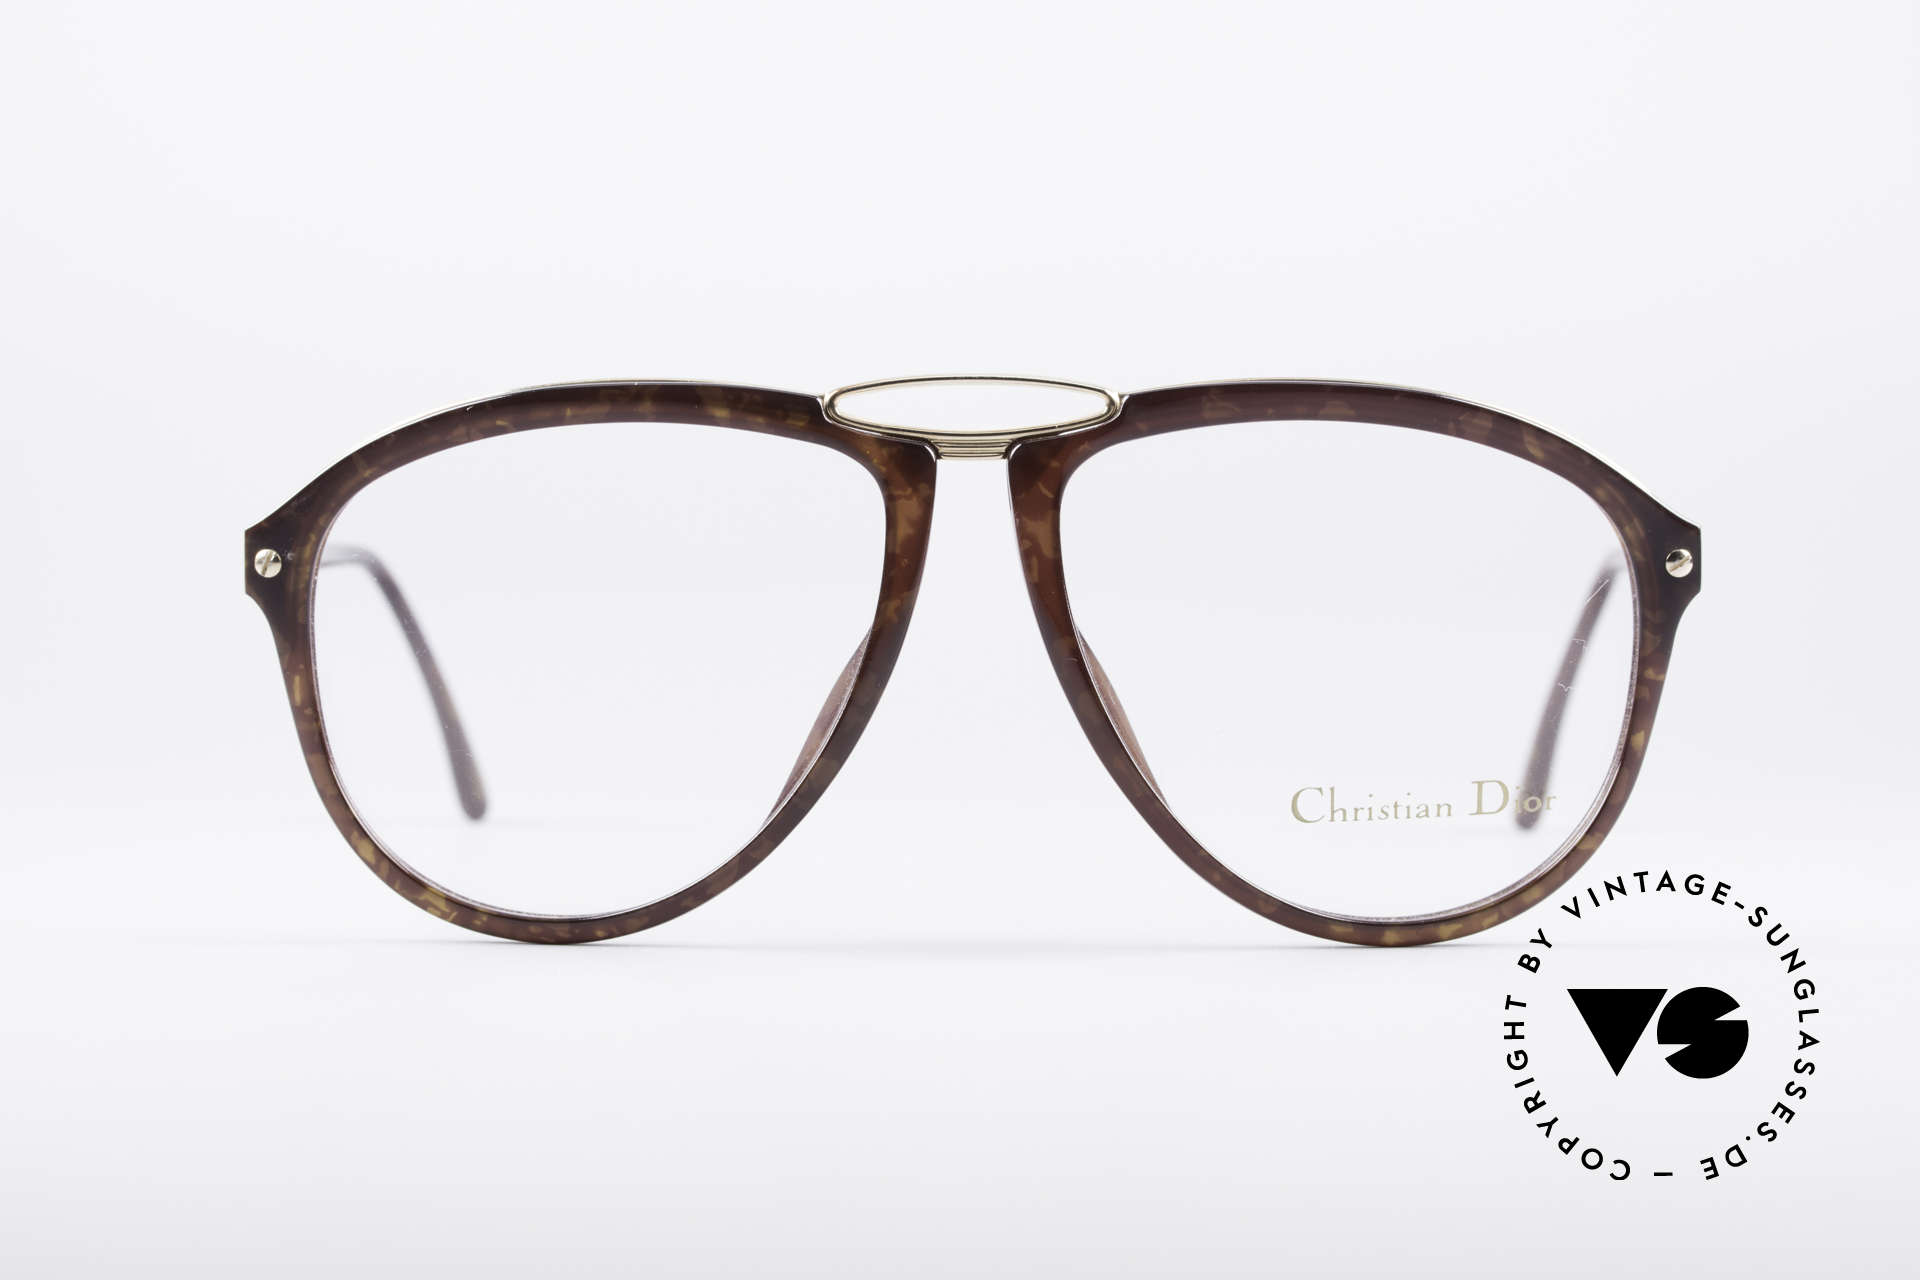 c751dfbdc604 Glasses christian dior no retro glasses vintage sunglasses jpg 1920x1280  Glasses from the 80s